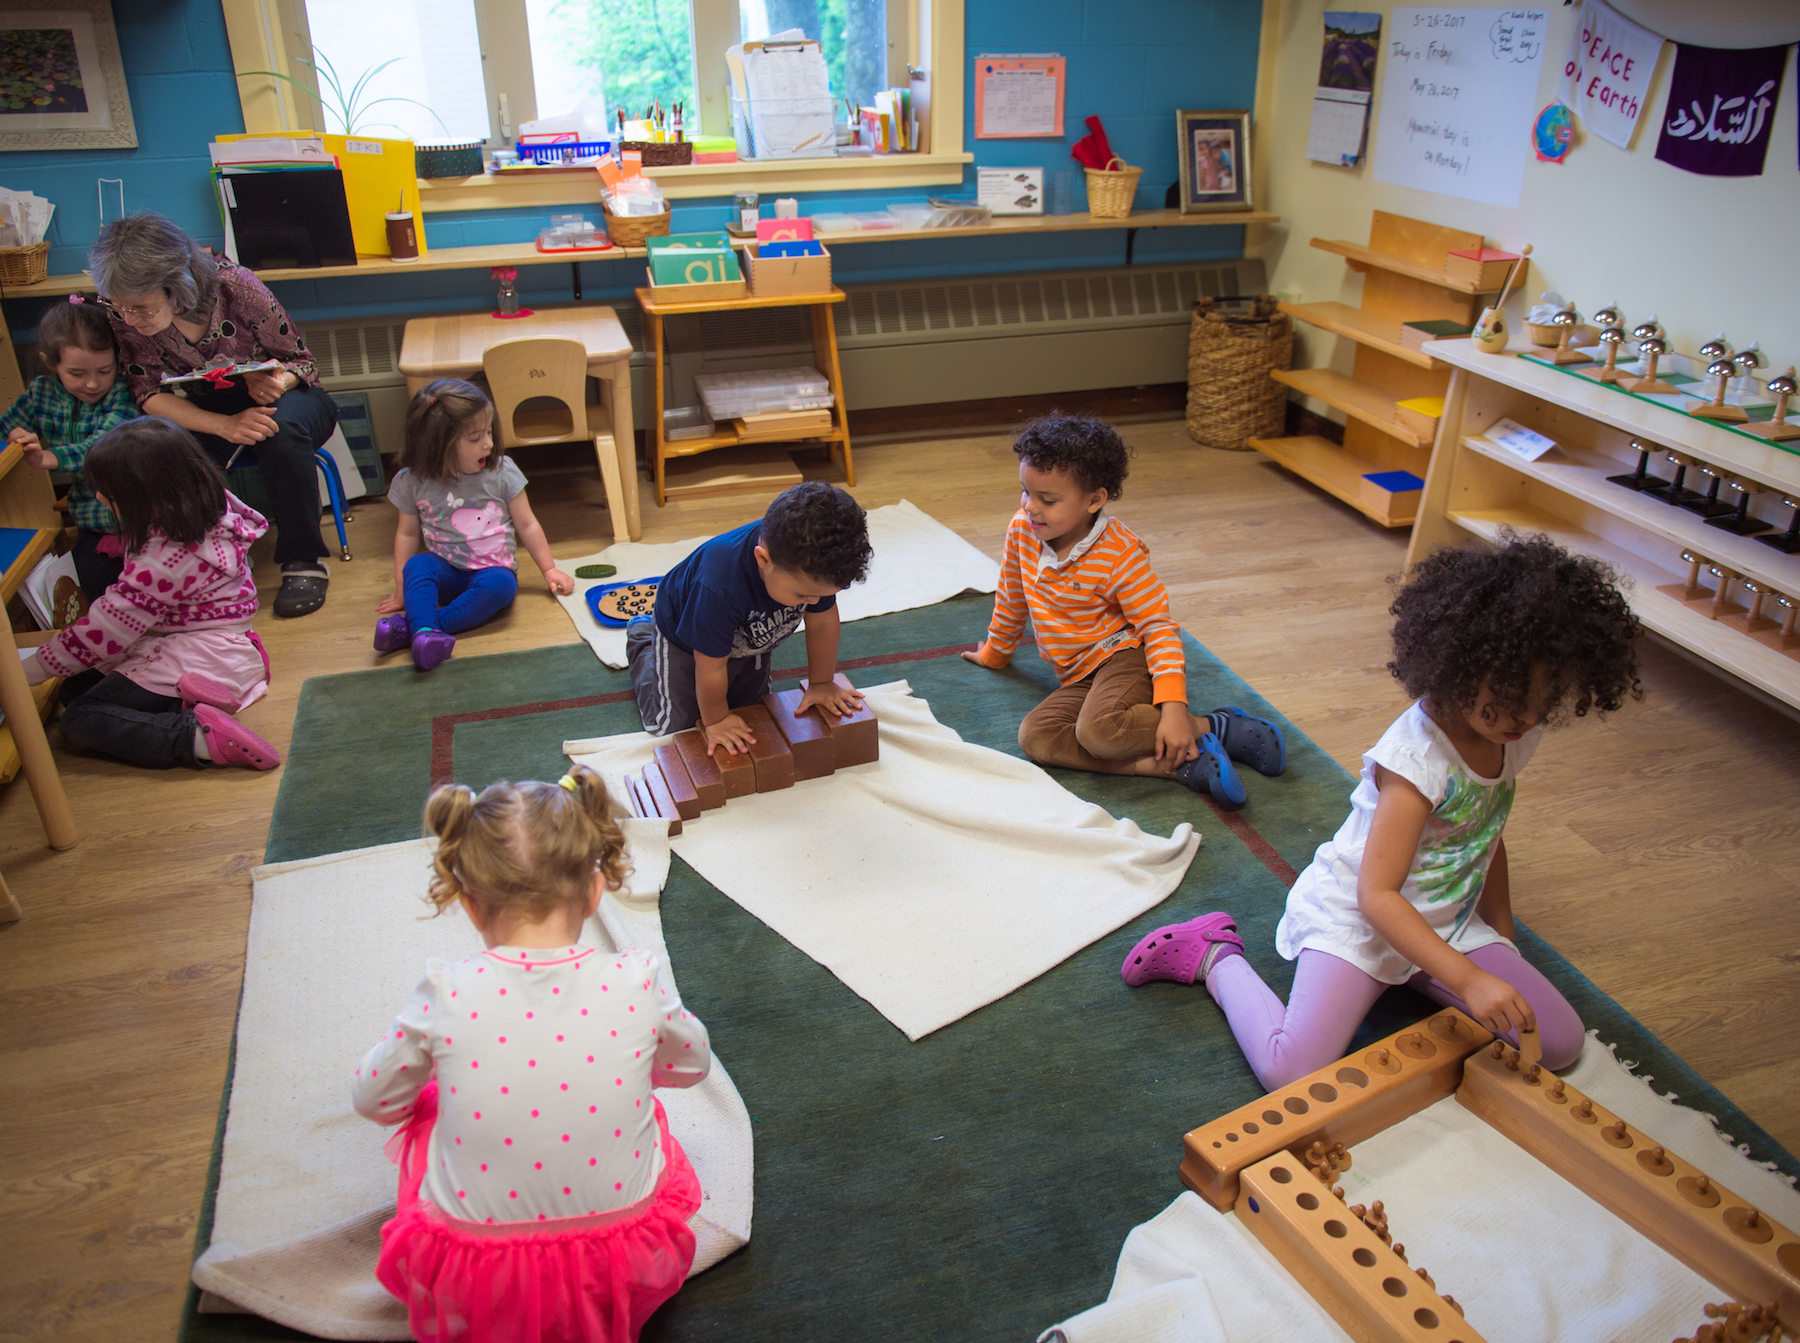 Students at Marigold Montessori School in Haverhill, Massachusetts, work in uninterrupted work blocks guided by their teachers. Photo courtesy the Wildflower Foundation